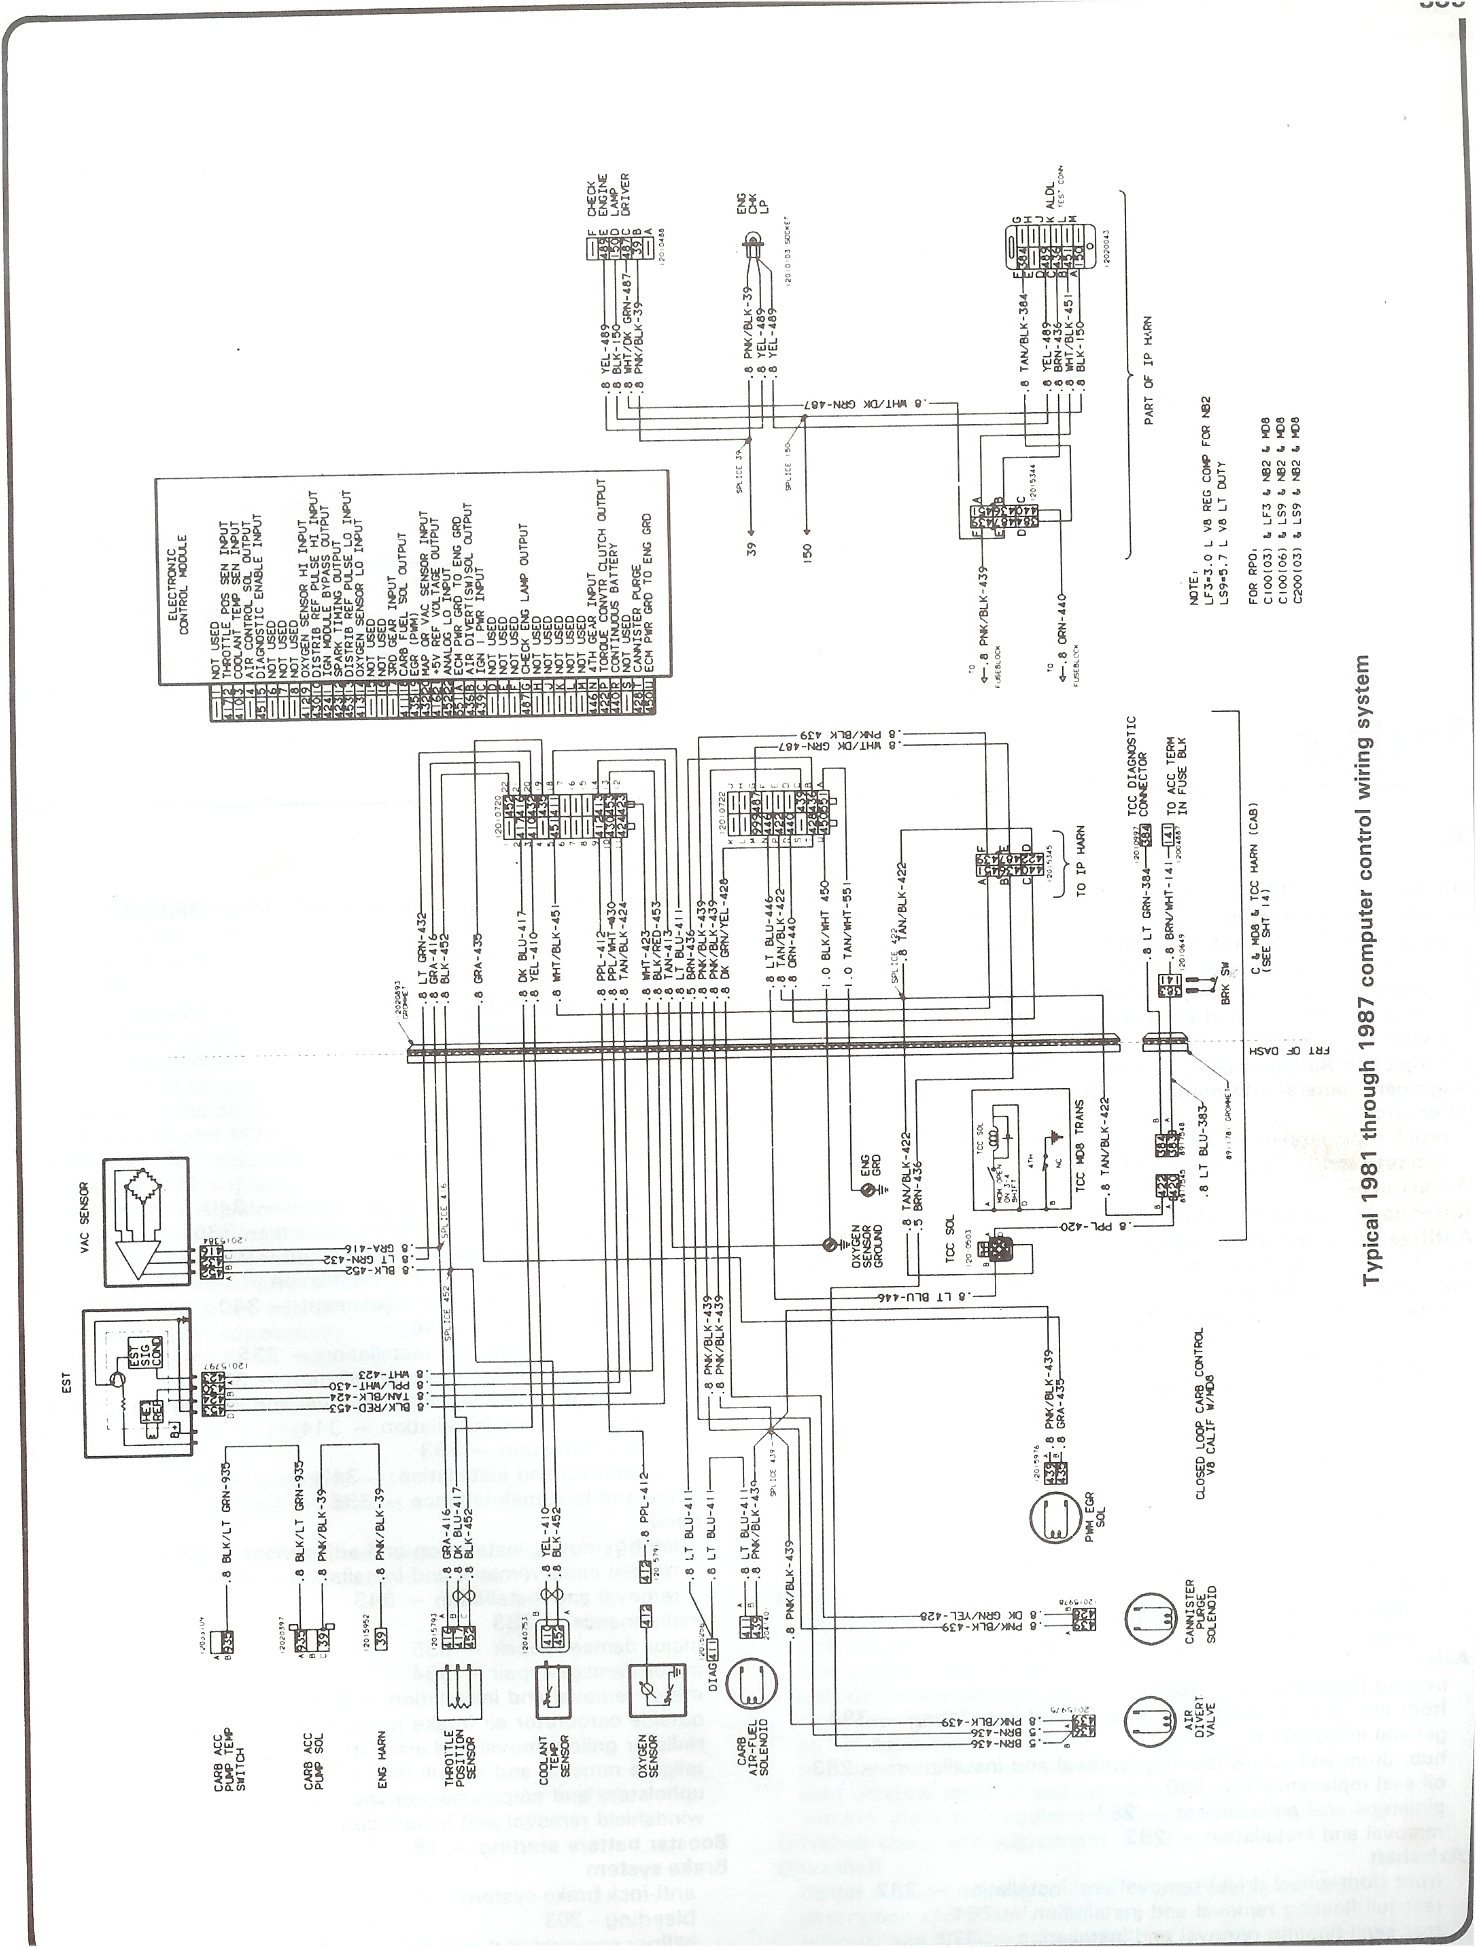 83 Chevy Truck Wiring Diagram Sel • Wiring Diagram For Free